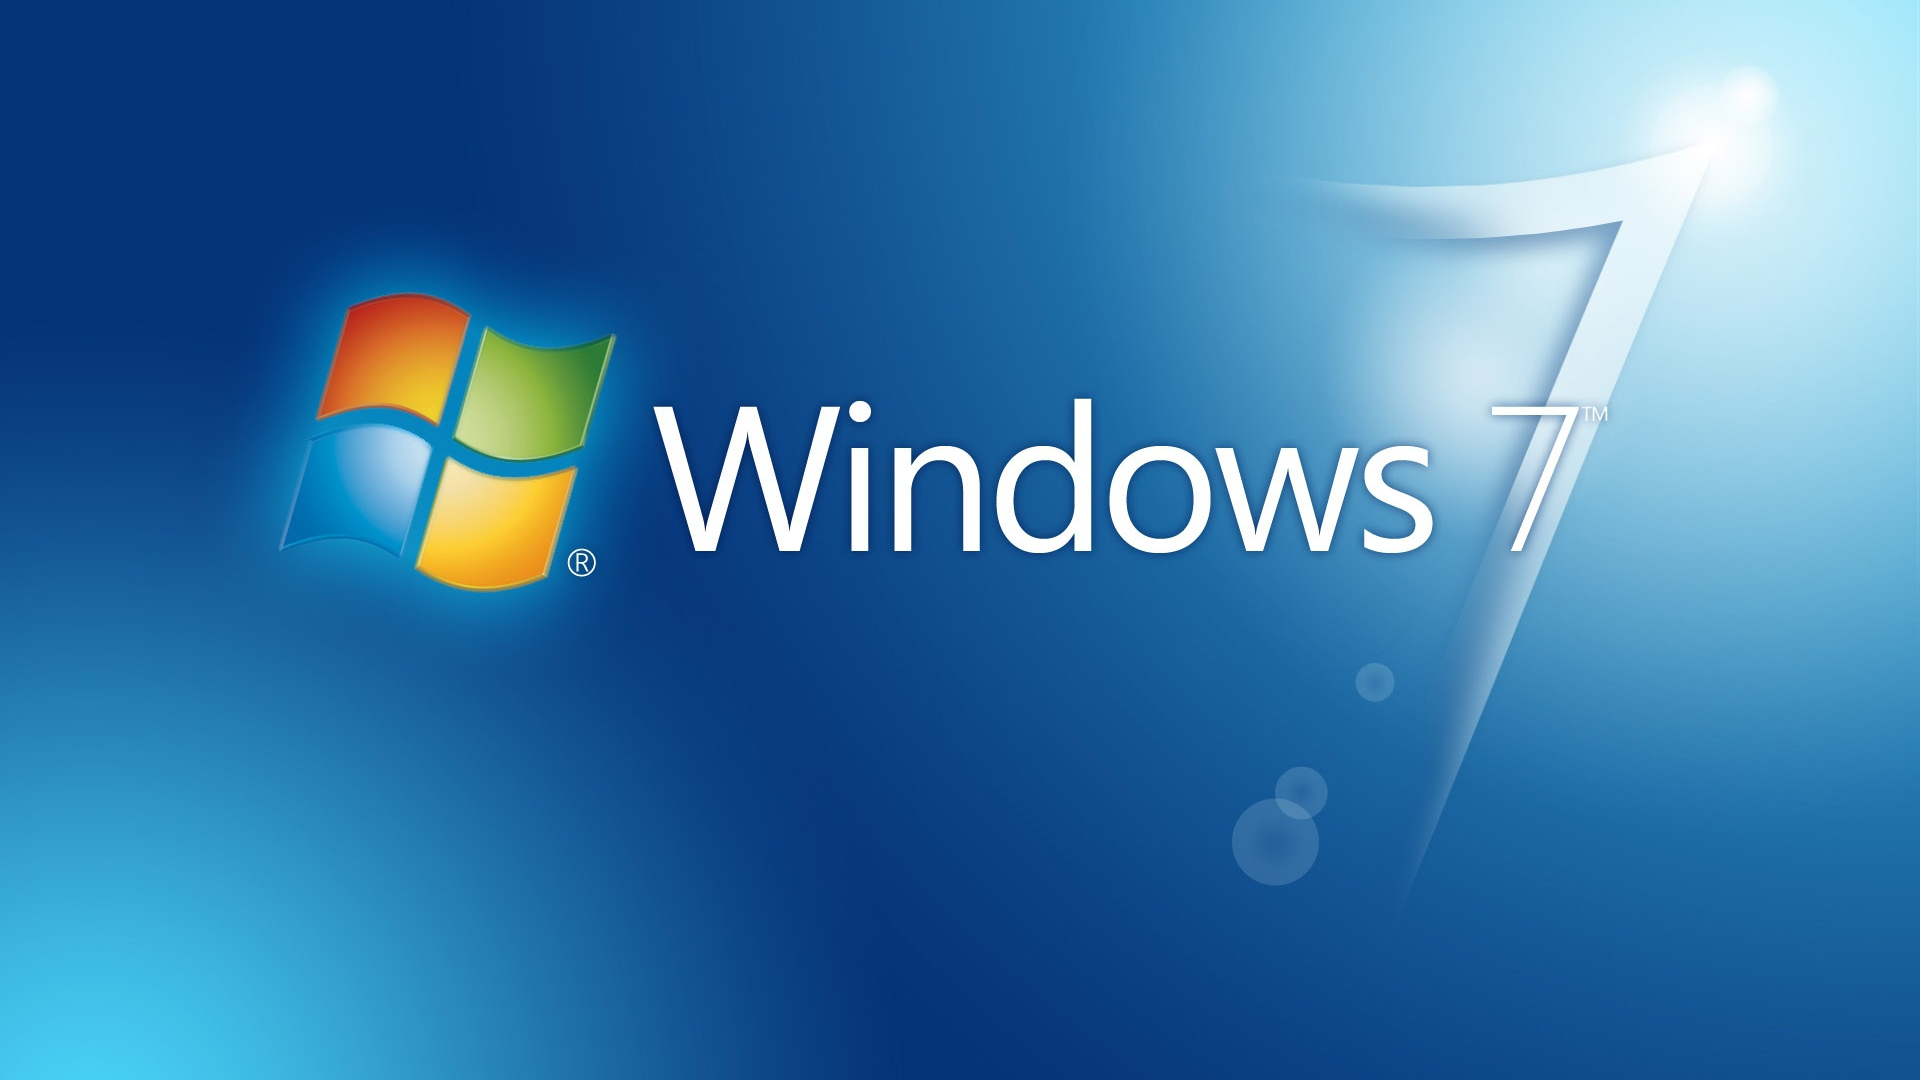 windows ultimate wallpapers hd wallpaper 1920x1080